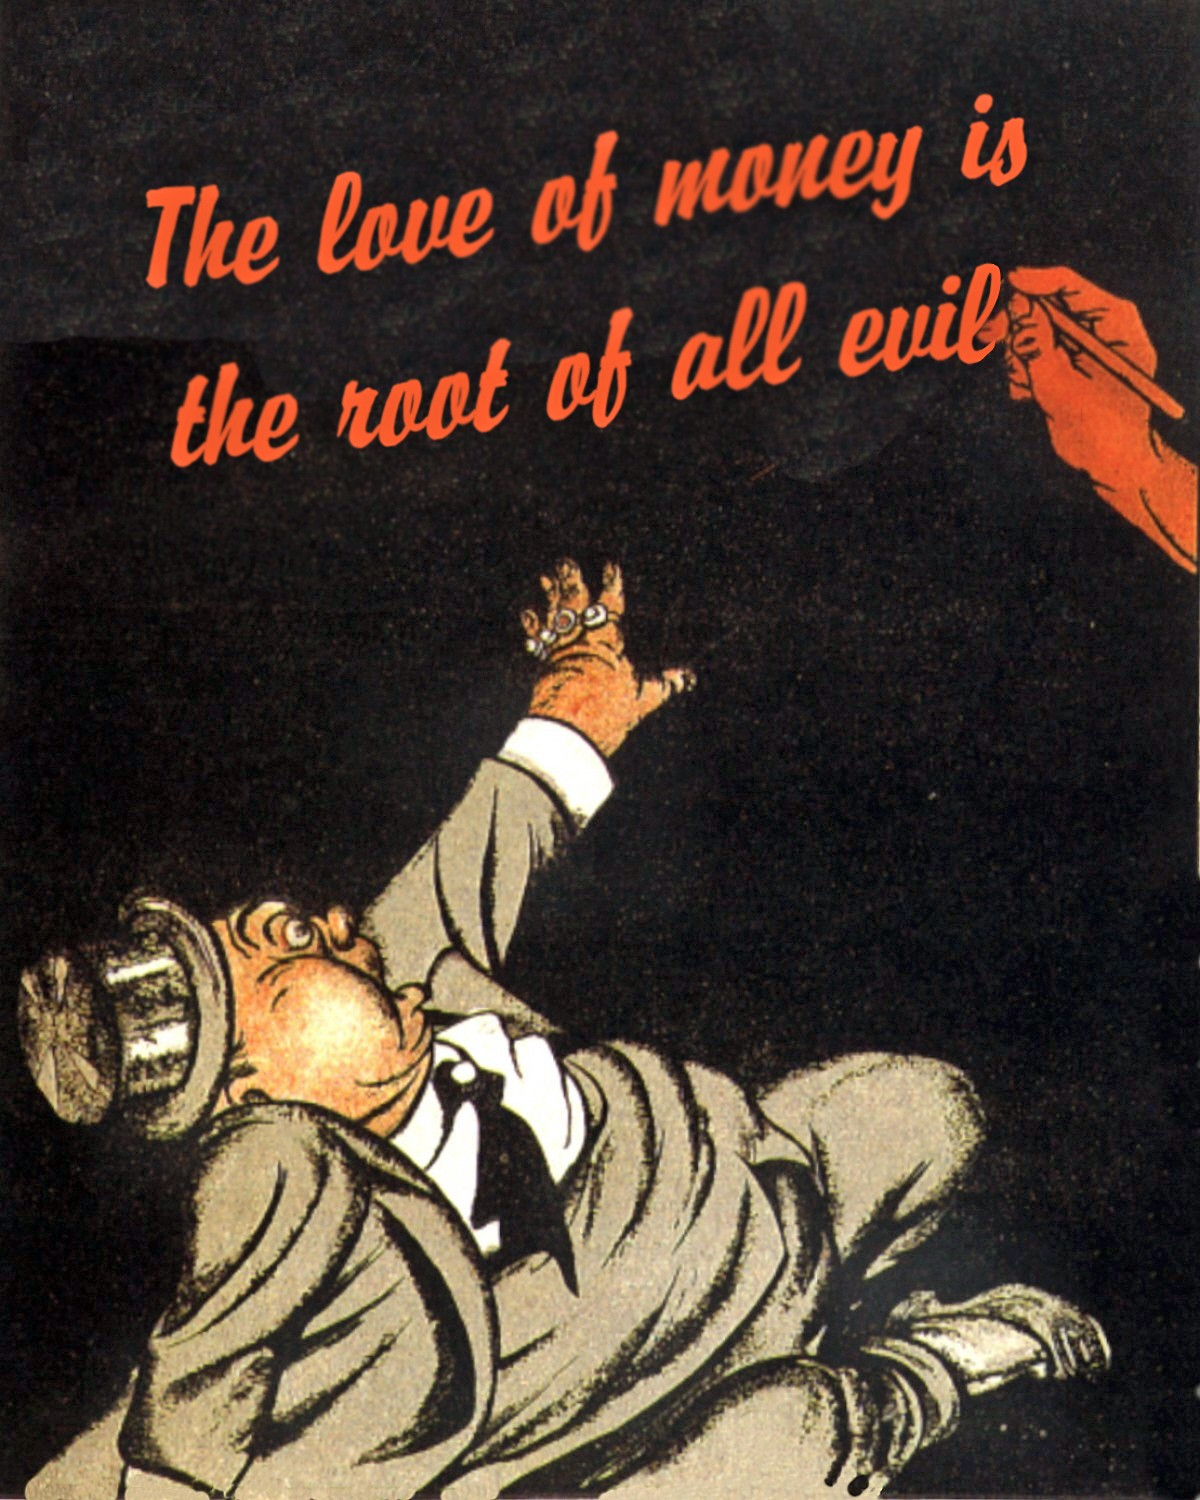 unknown artist the love of money is the root of all evil  26 2013 cabinet feedback on n protester bounced by uk home office for protest at chi chi boat race 00 unknown artist the love of money is